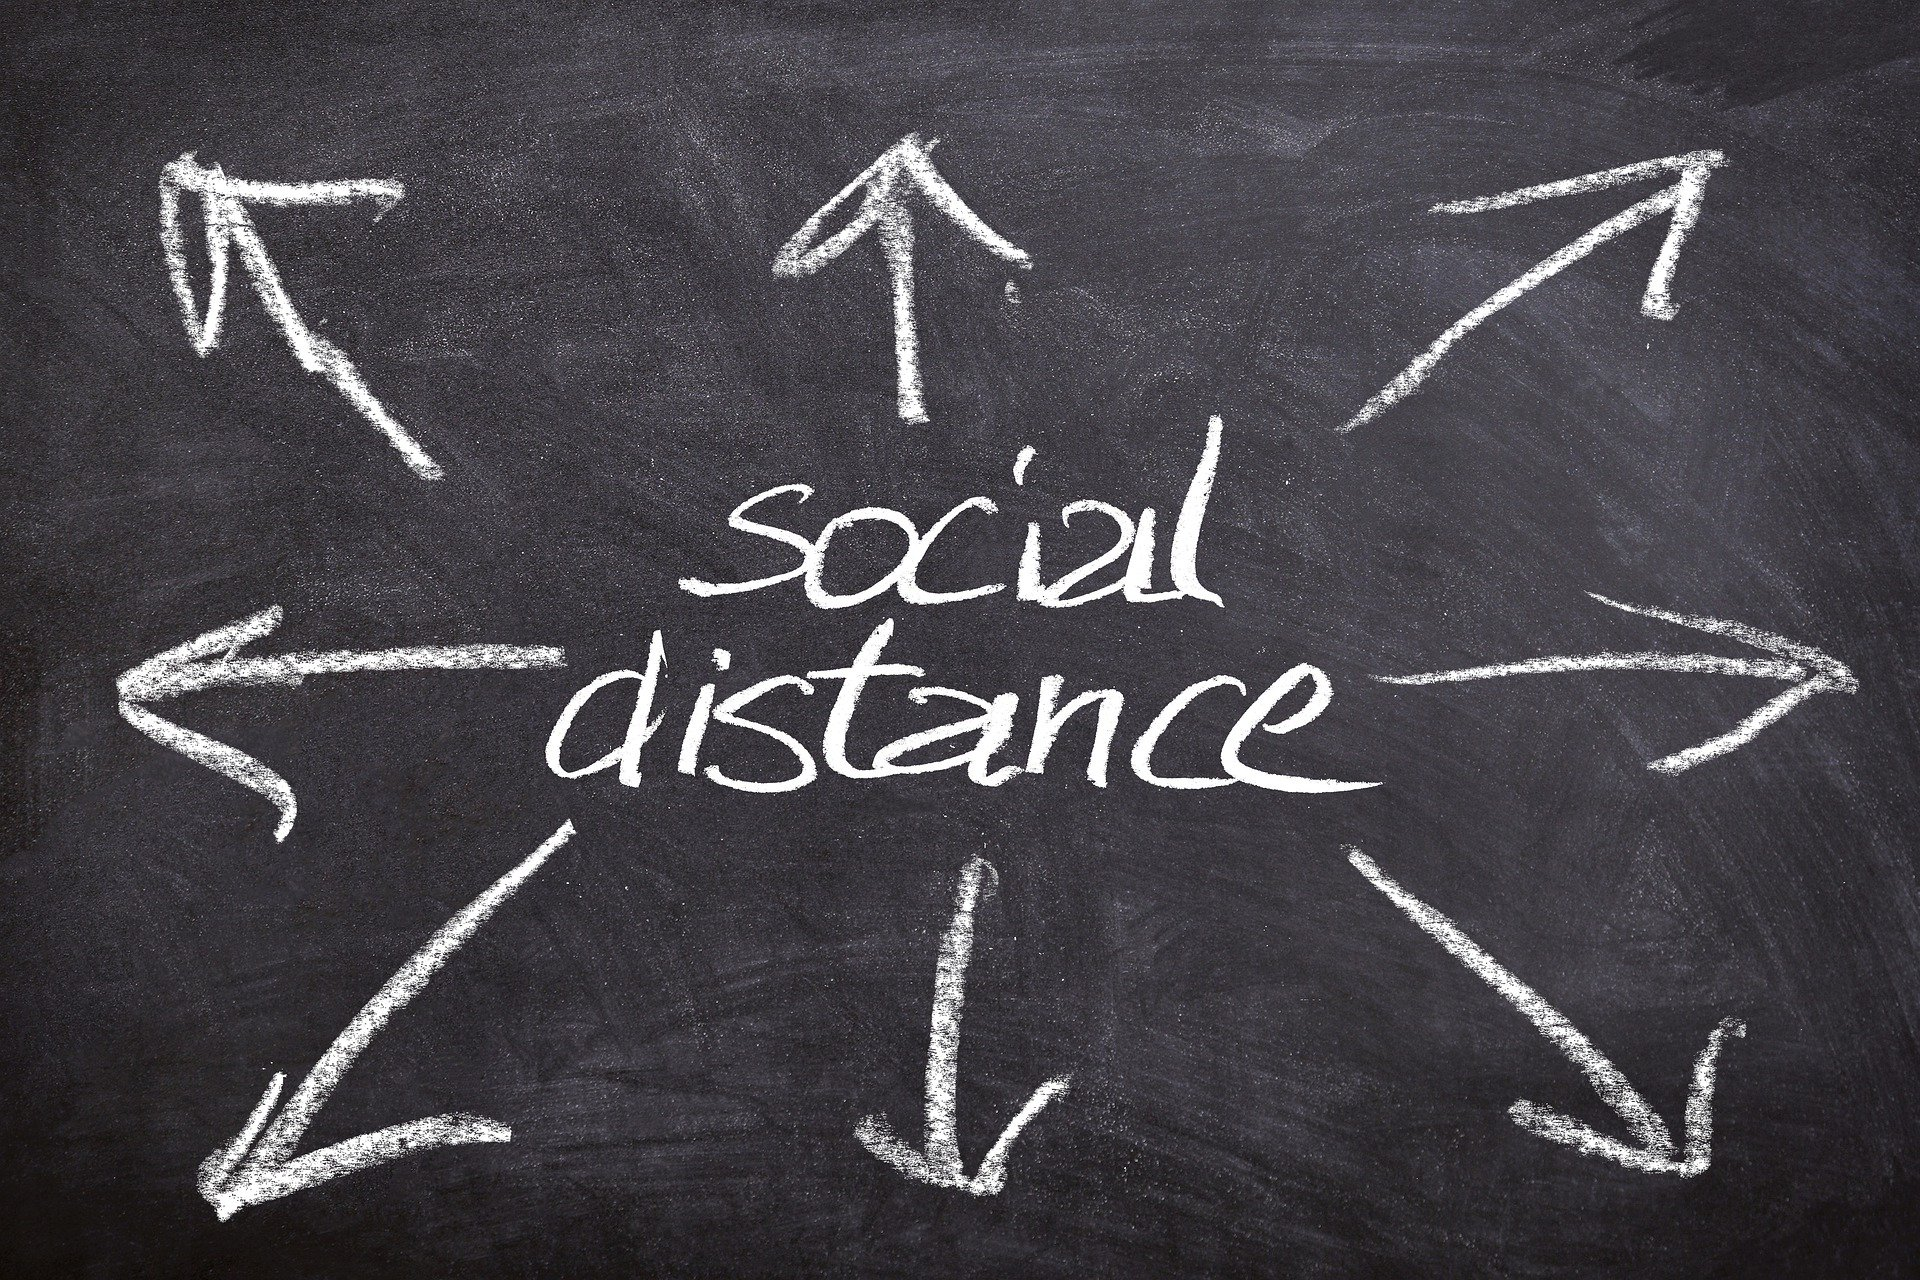 Social distance hd wallpaers